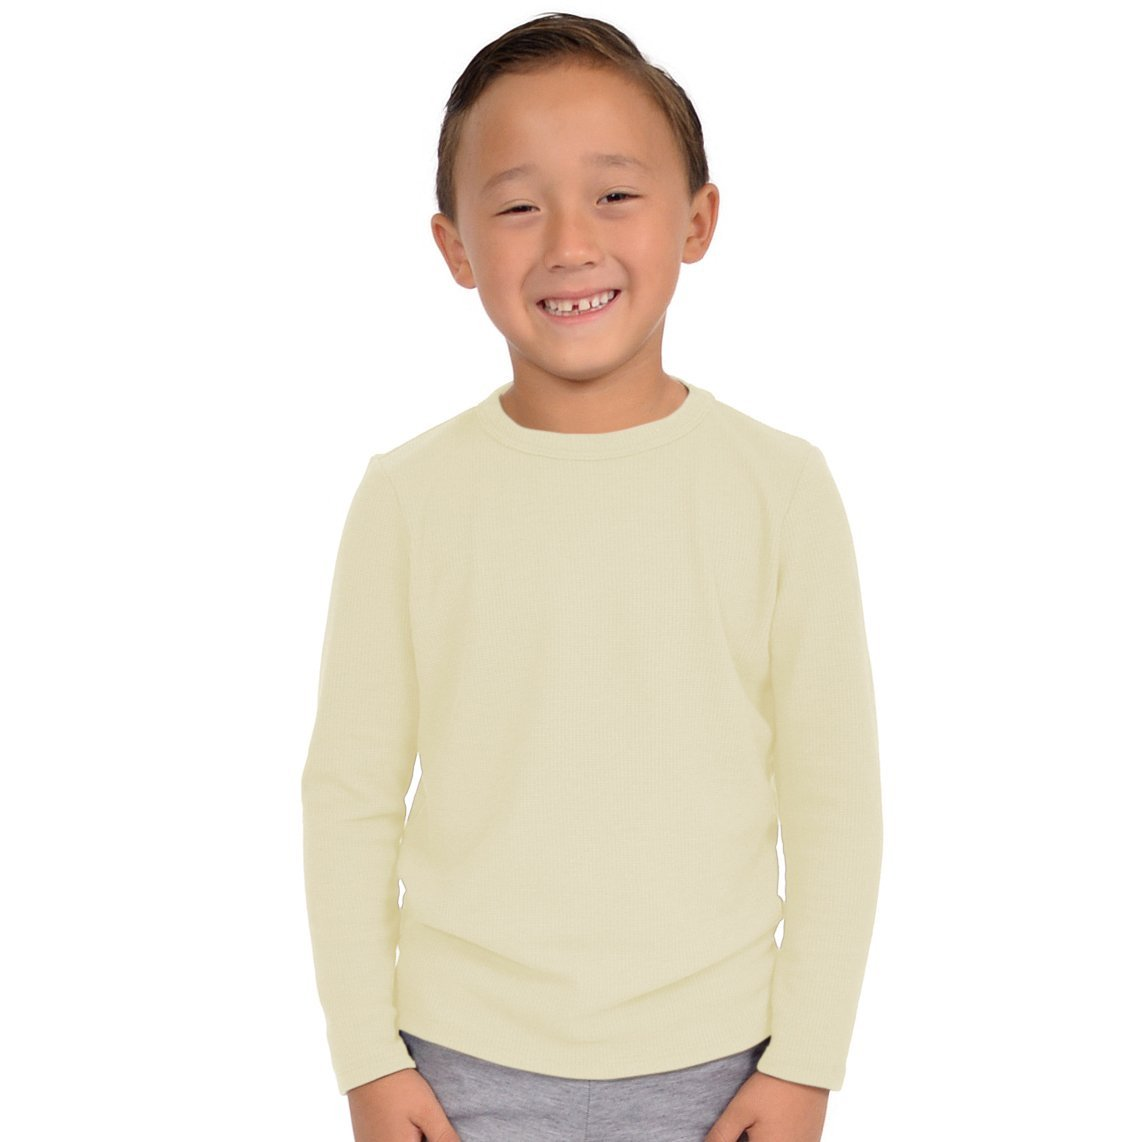 Stretch is Comfort Boys Thermal Long Sleeve Shirt BOYSAW1701-$P